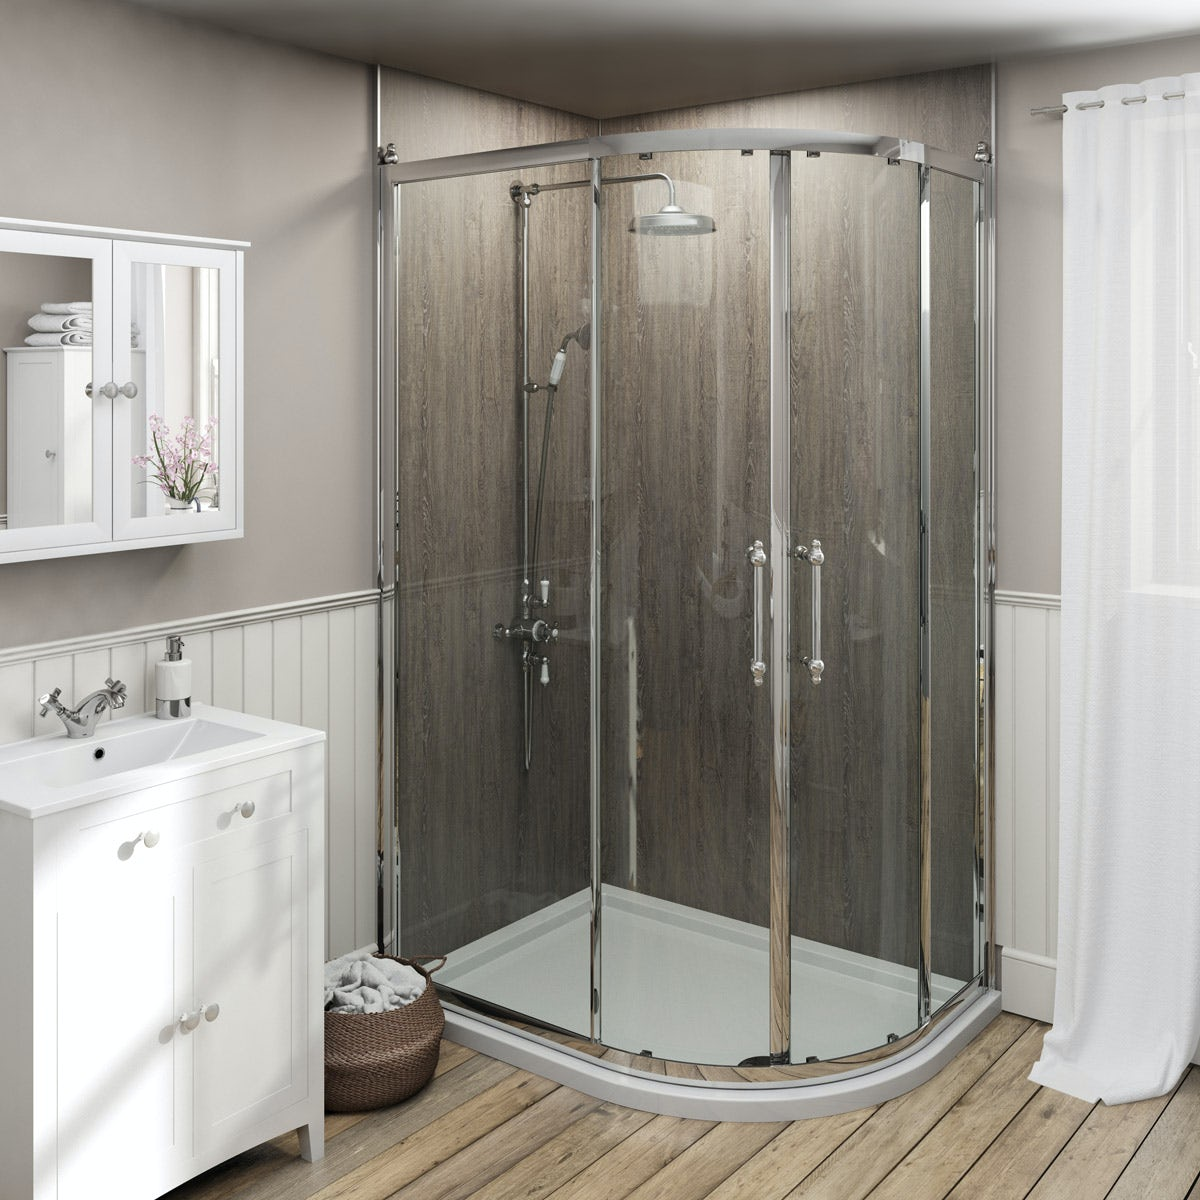 The Bath Co. Camberley traditional 8mm offset quadrant shower enclosure 1200 x 800